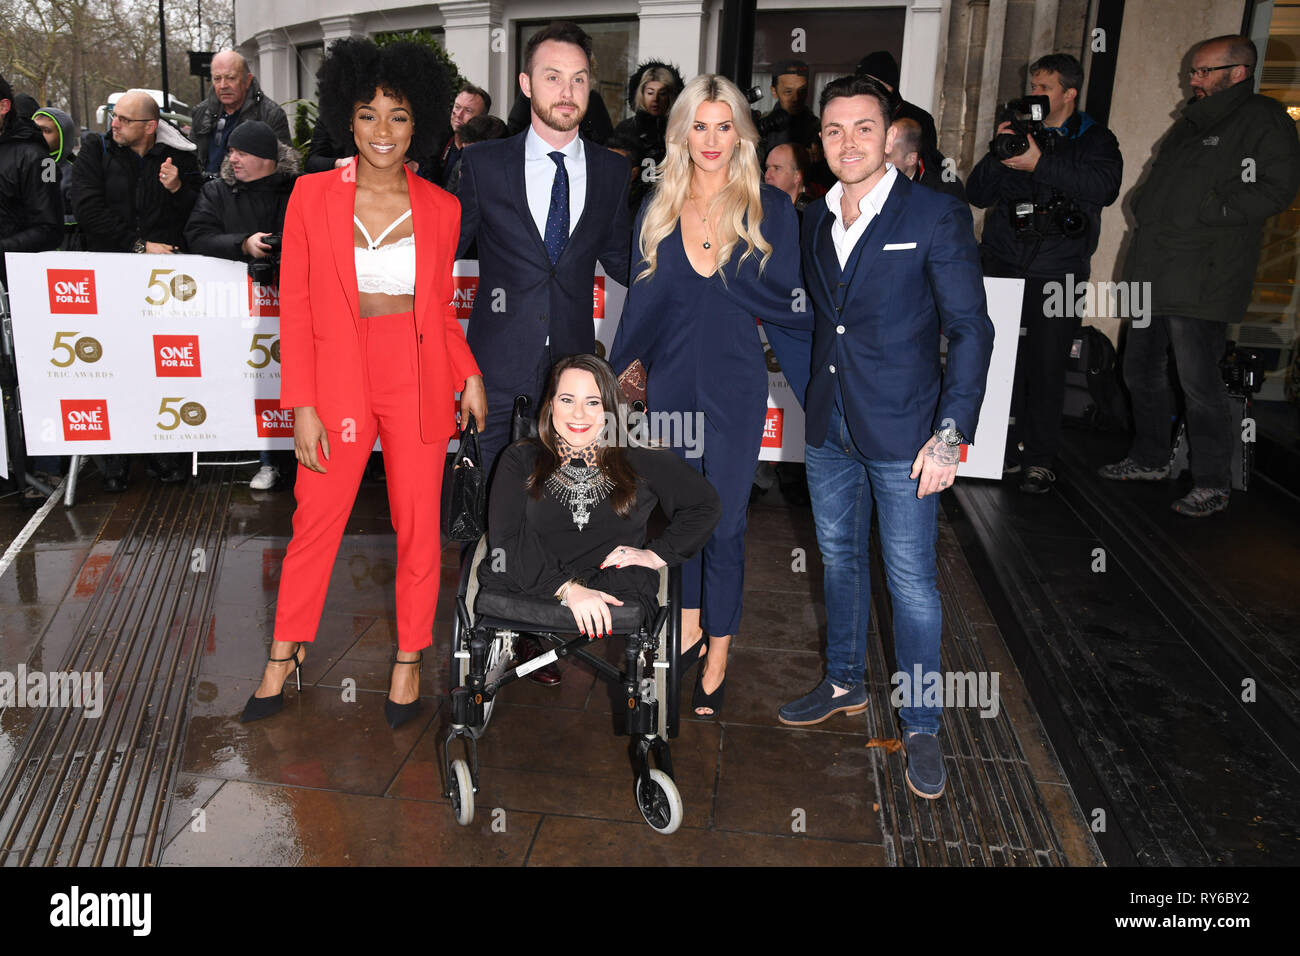 London, UK. 12th Mar, 2019. LONDON, UK. March 12, 2019: Hollyoaks arriving for the TRIC Awards 2019 at the Grosvenor House Hotel, London. Picture: Steve Vas/Featureflash Credit: Paul Smith/Alamy Live News Stock Photo